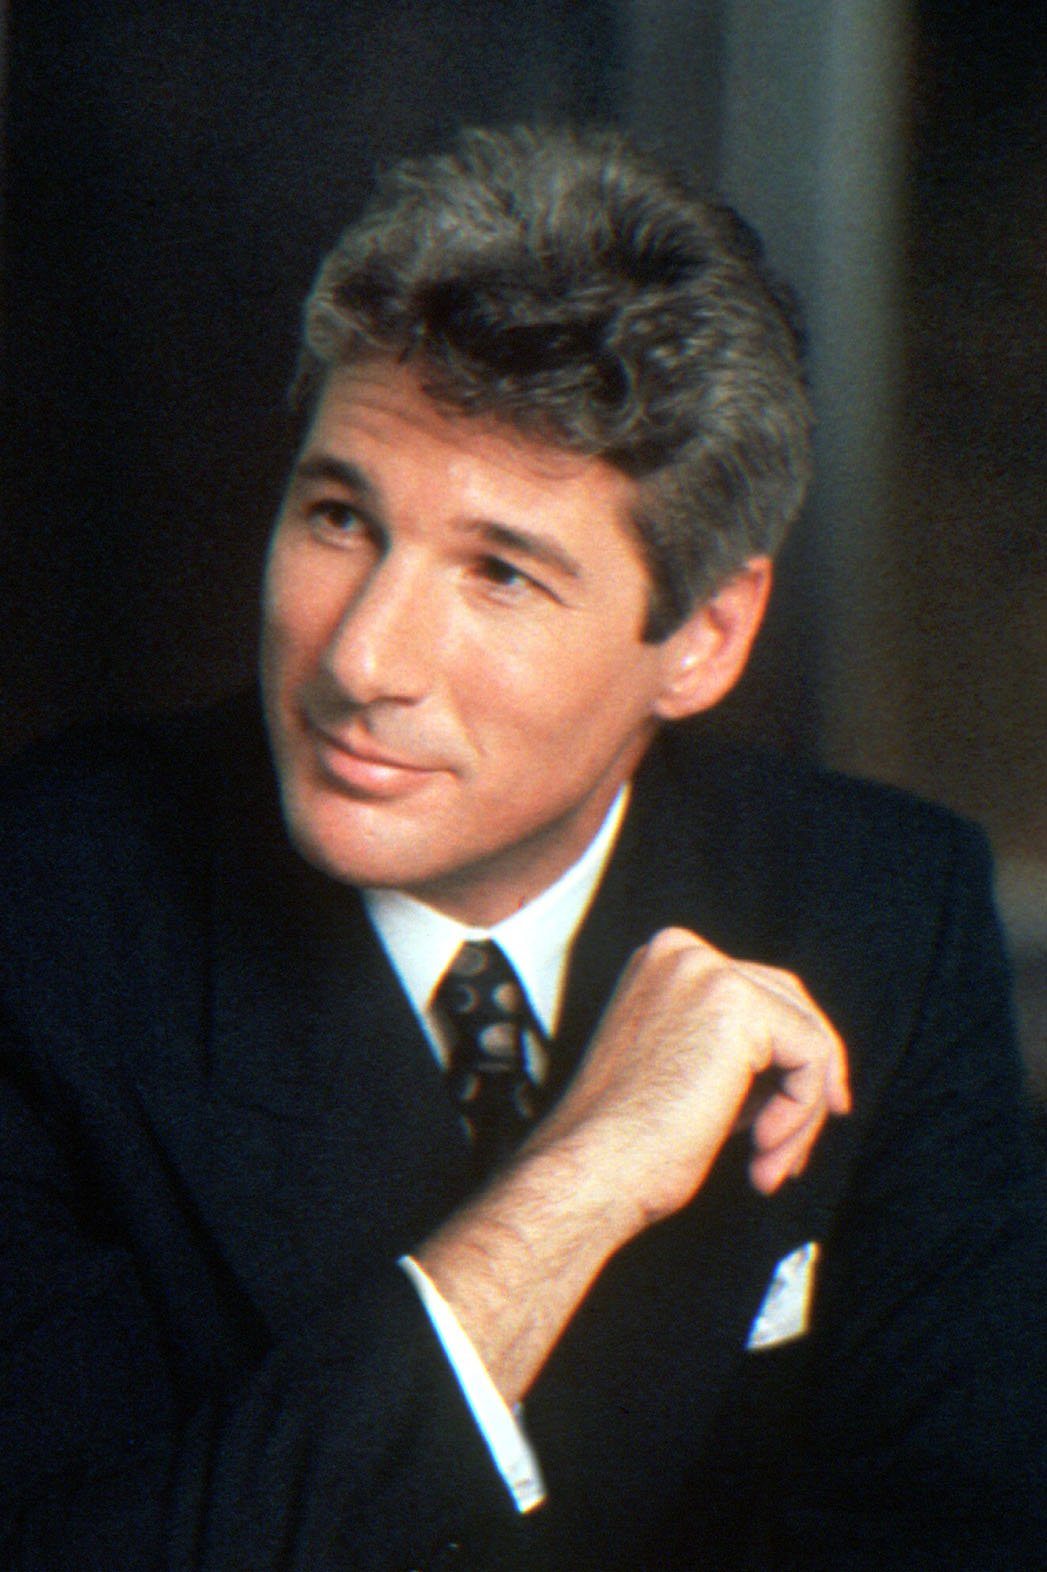 Pictures of Richard Gere